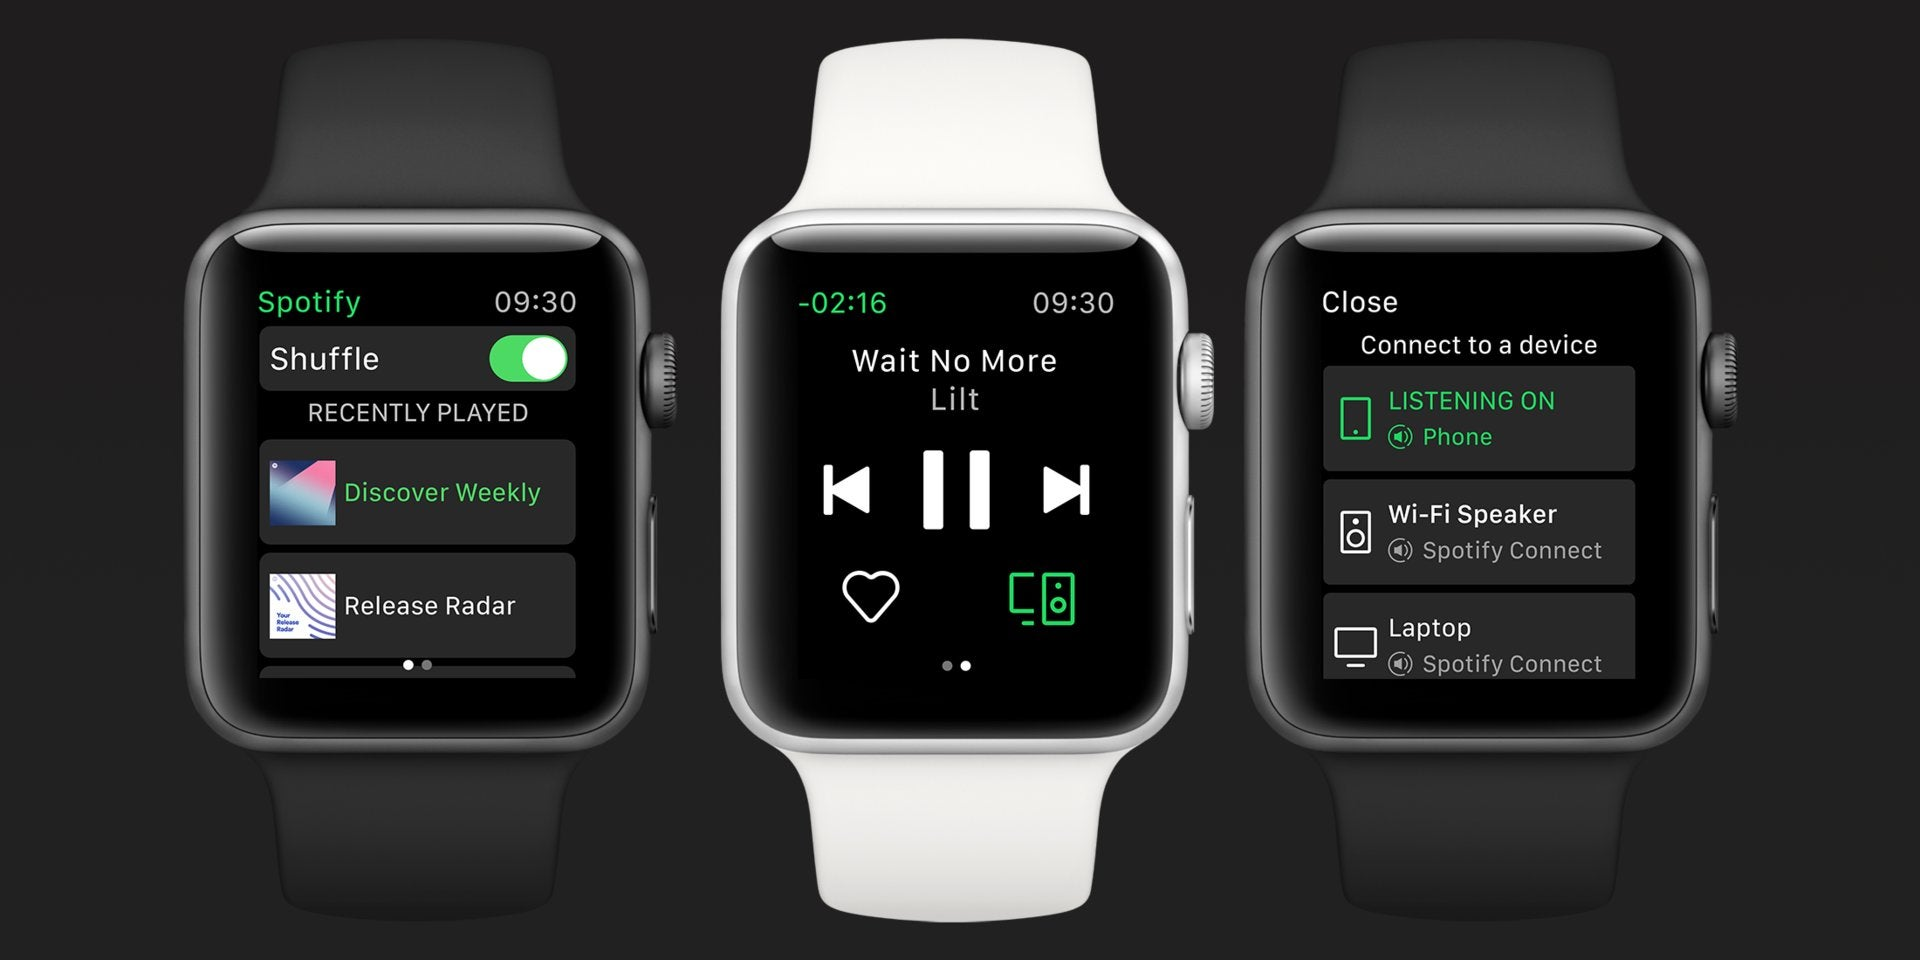 apple-watch consumer-tech ios iphone music saga spotifys-apple-watch-app-is-finally-here streaming-music watchos wearables